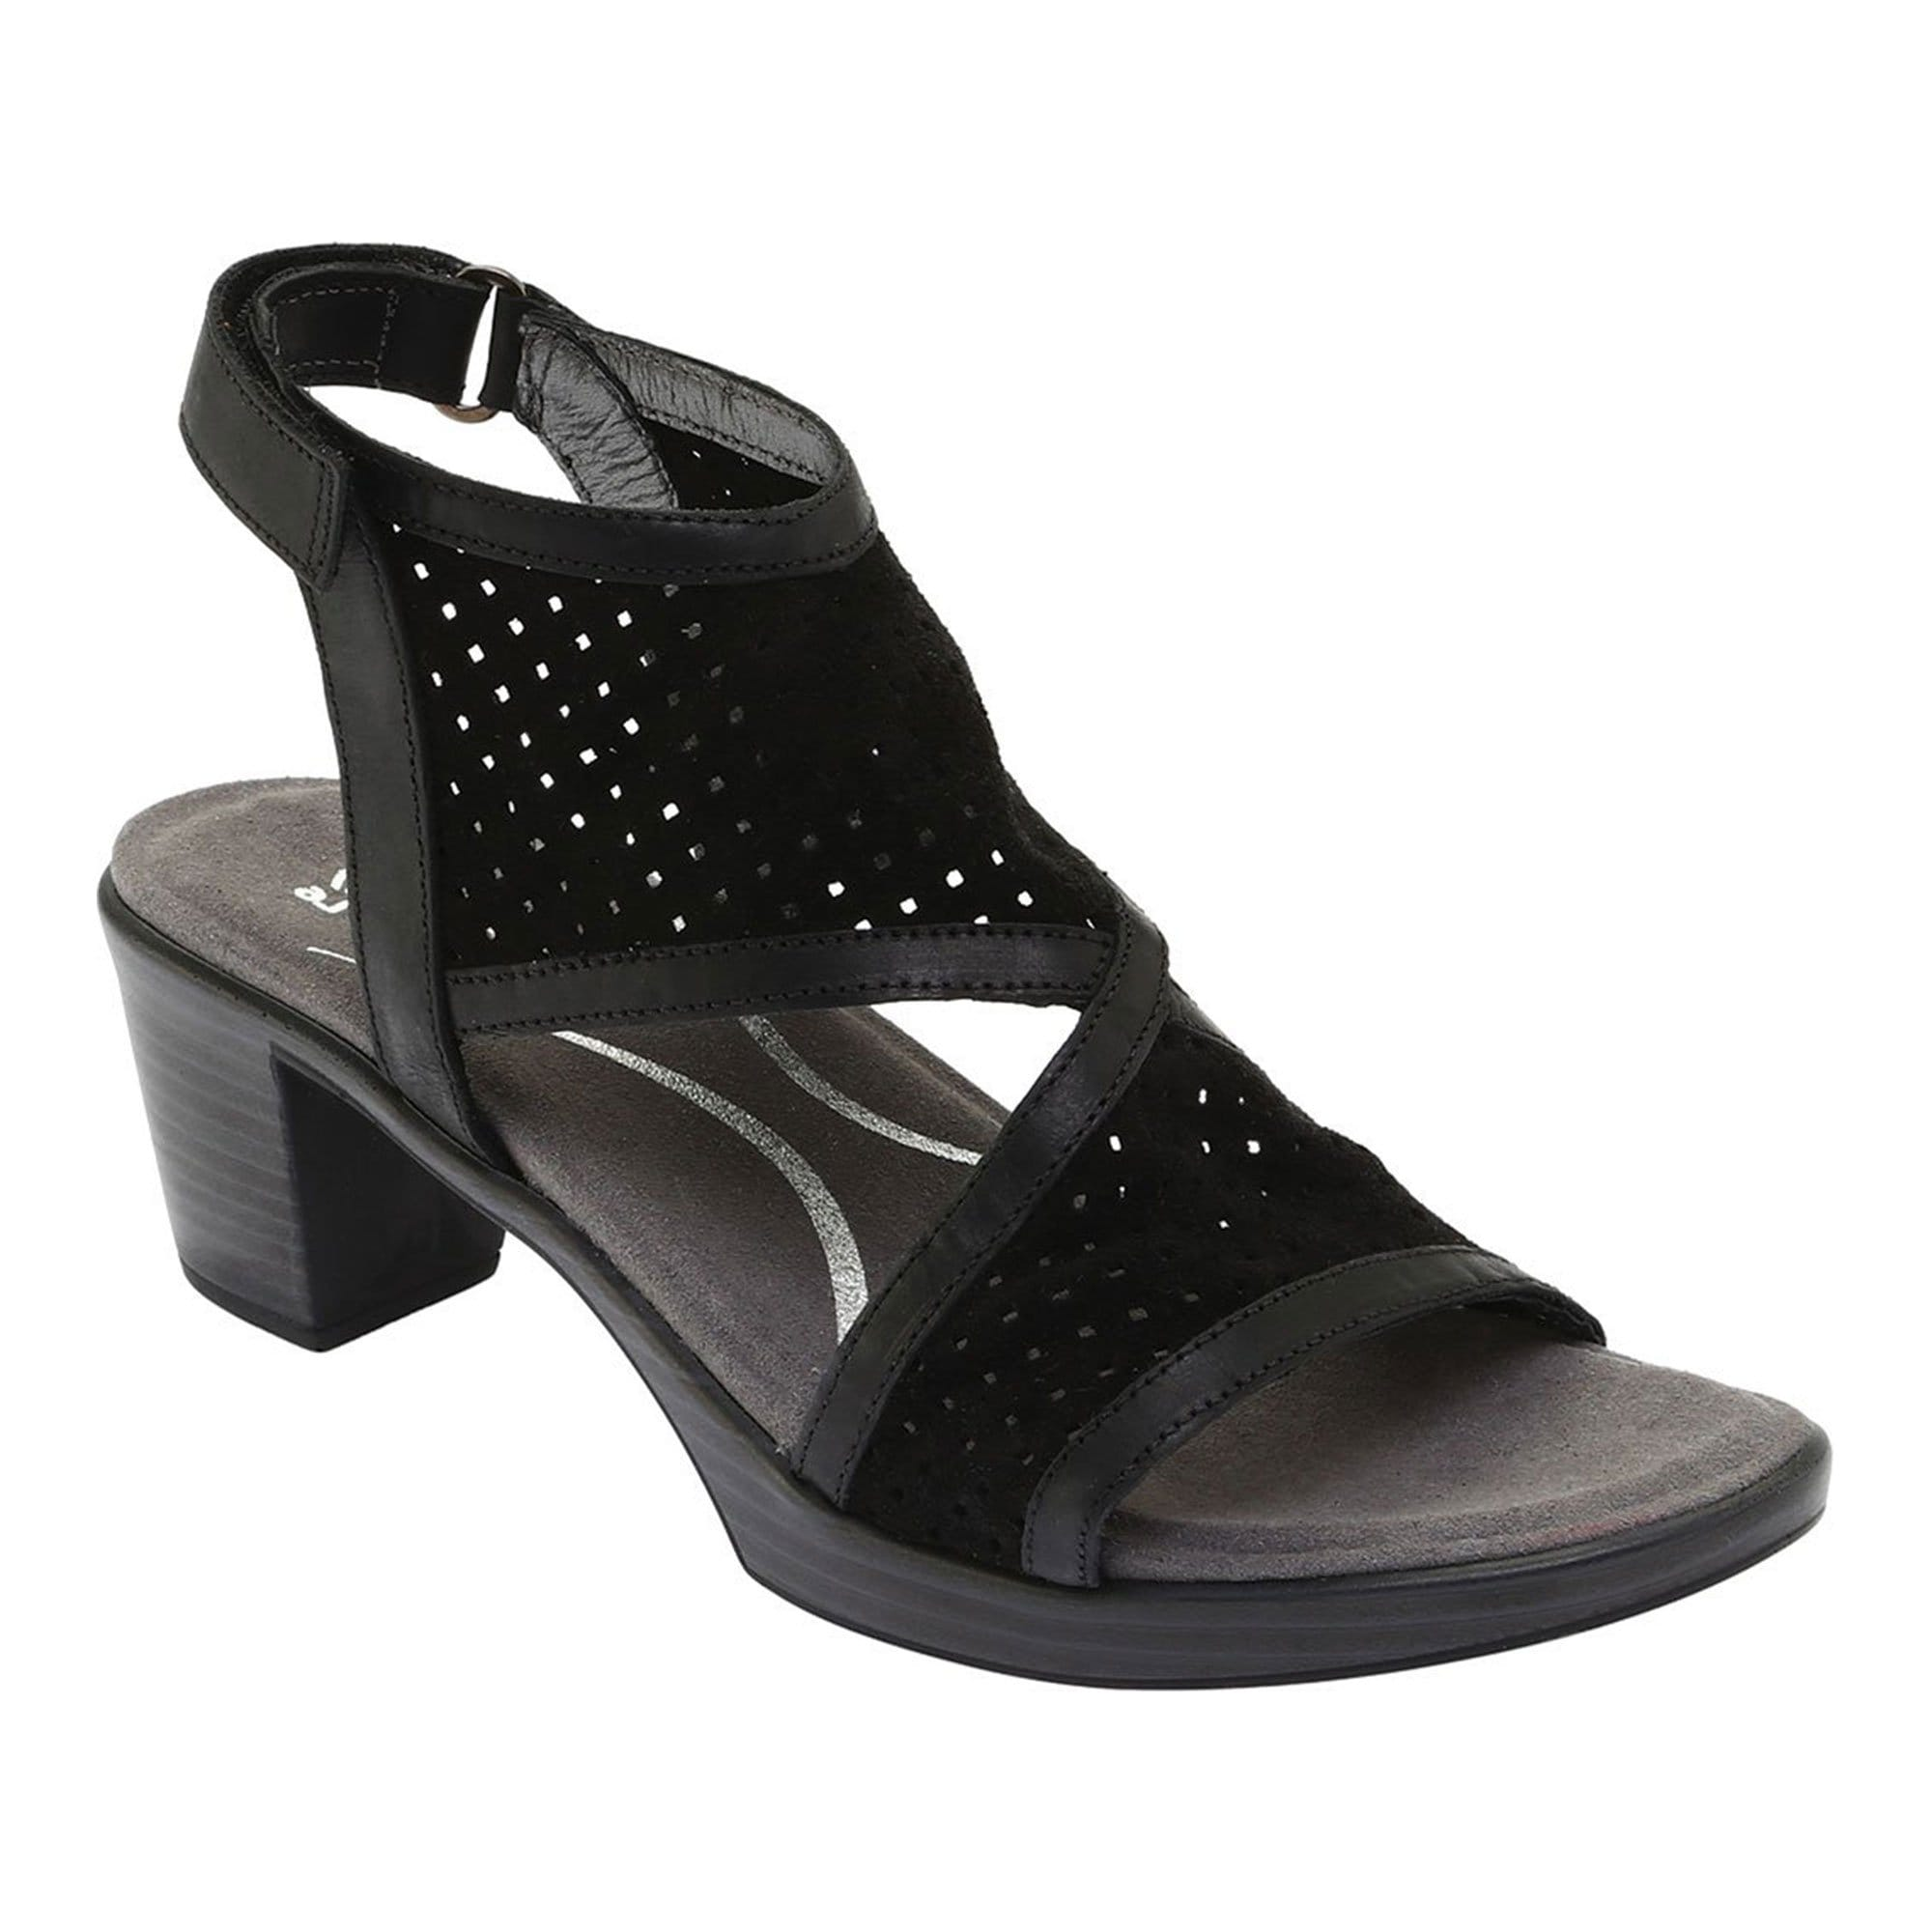 Naot Destiny Womens Perforated Suede Heeled Sandal NYX Black Oily | Simons Shoes